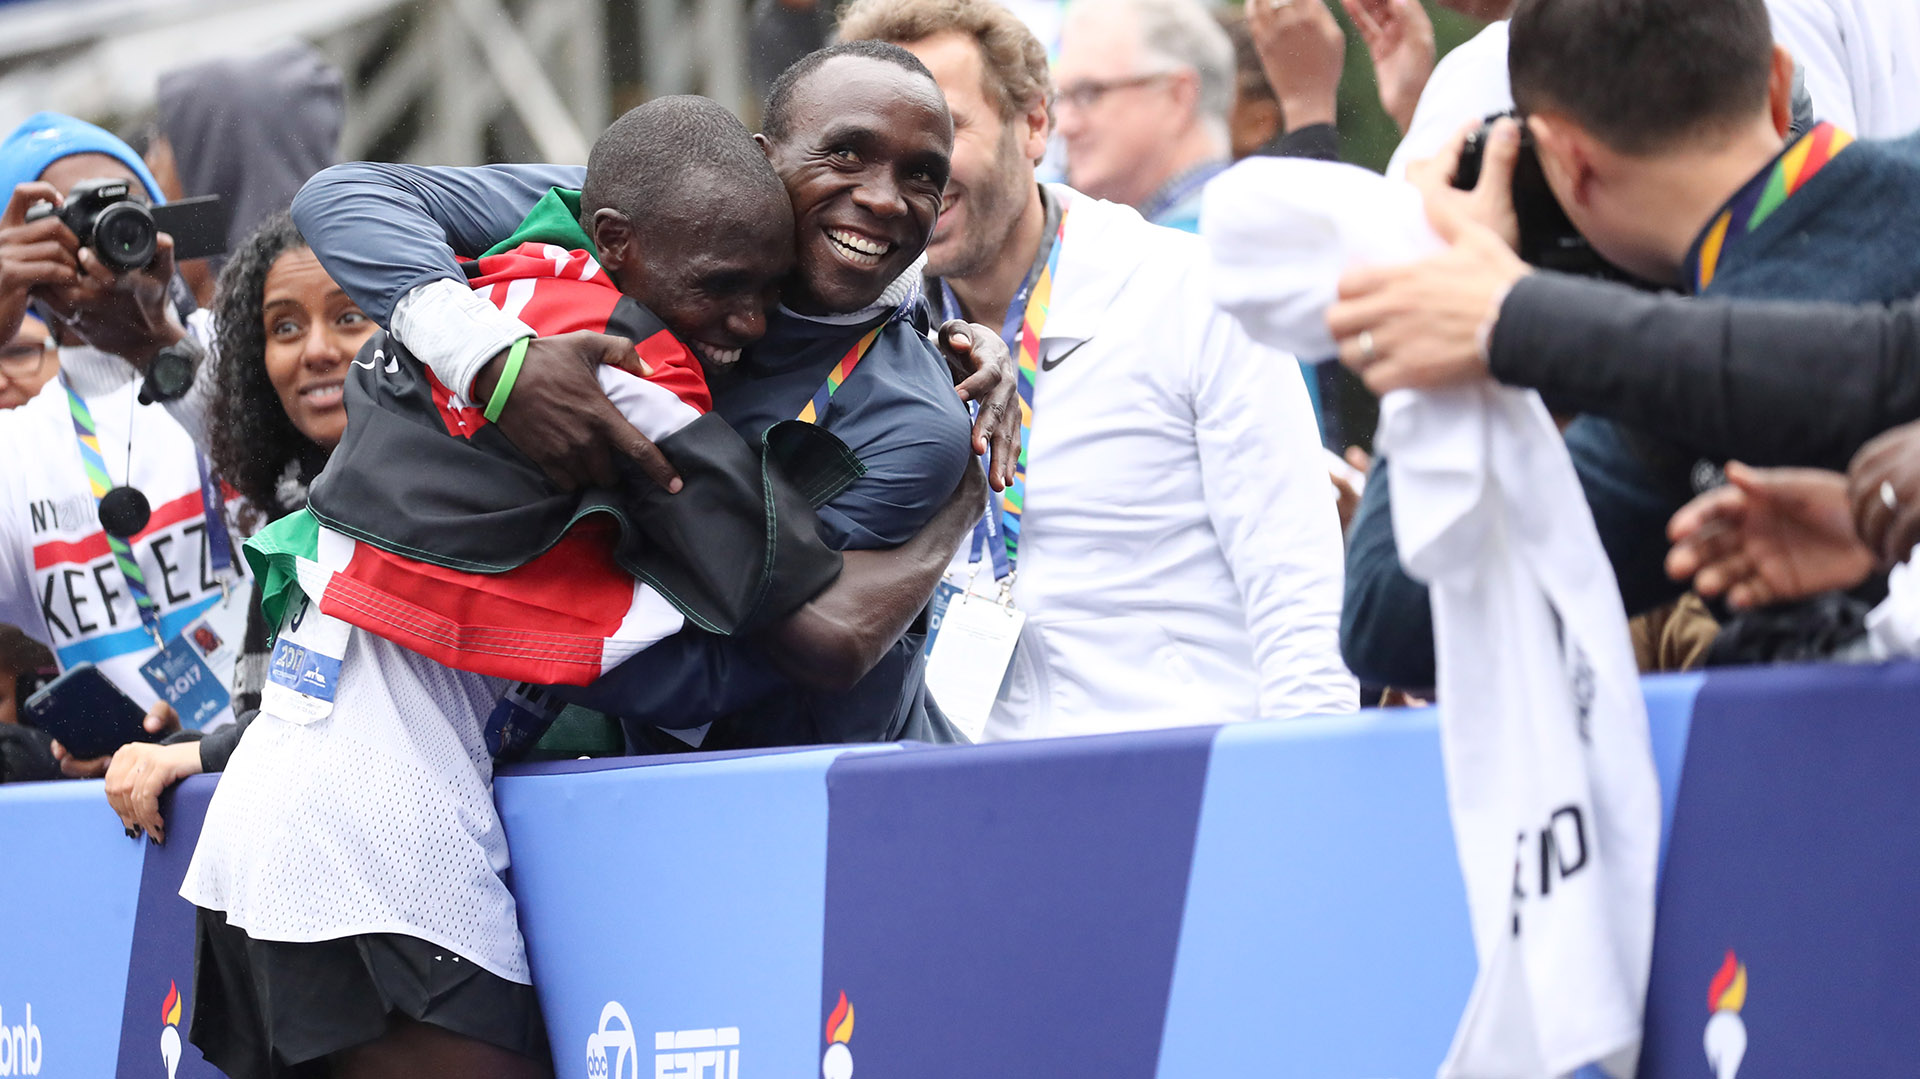 NEW YORK, NY - NOVEMBER 05: Geoffrey Kamworor of Kenya celebrates winning the Professional Men's Division during the 2017 TCS New York City Marathon in Central Park on November 5, 2017 in New York City. (Photo by Elsa/Getty Images)